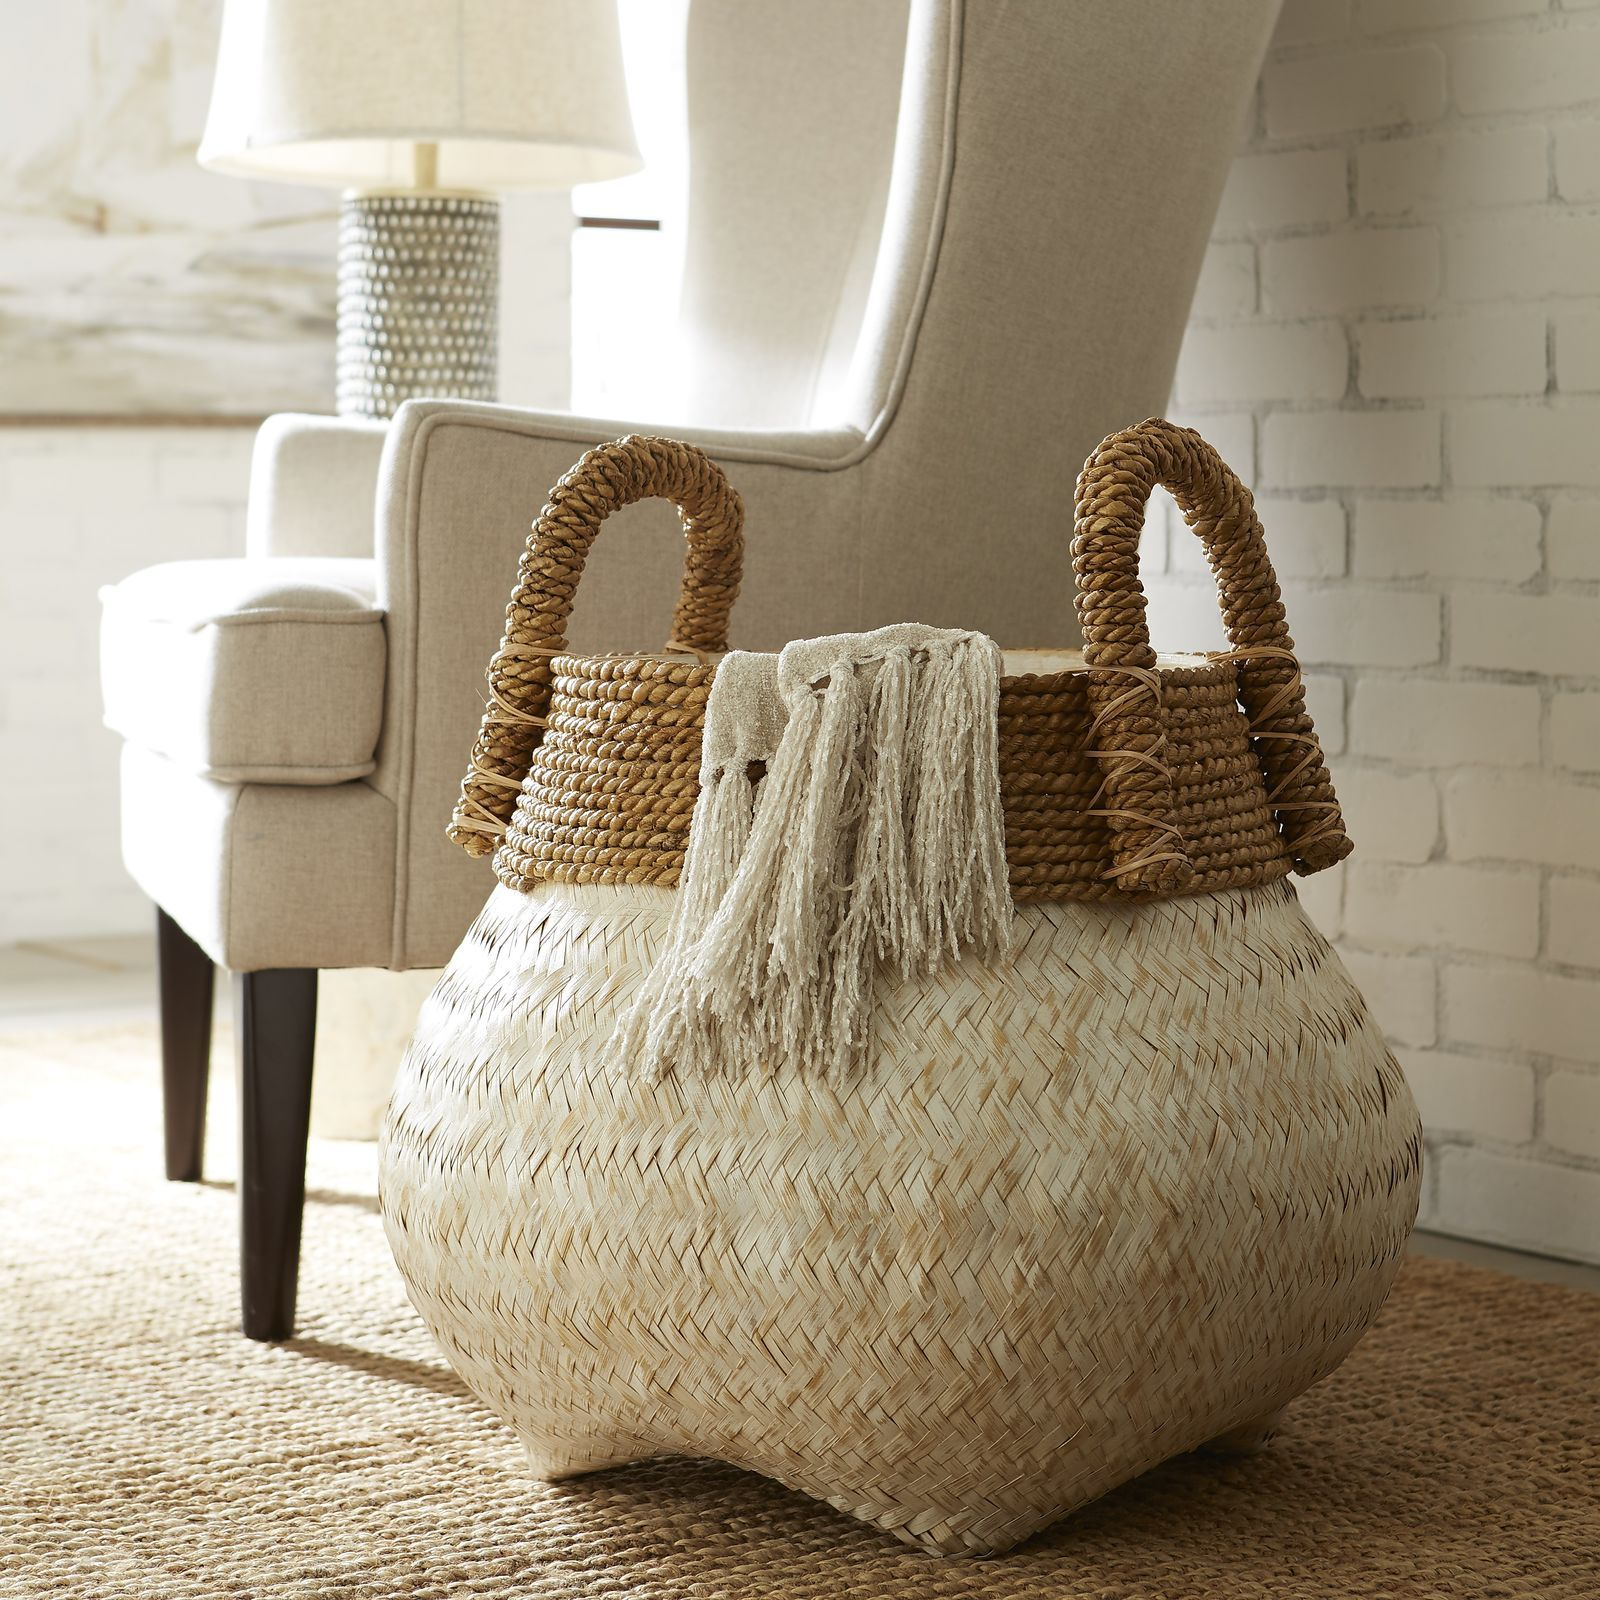 Storage goes global with our belly basket. Hand-woven of bamboo by Indonesian artisans, it features a stunning herringbone-inspired design. For extra strength and visual contrast, the rim and handles are crafted from twisted banana leaf. Perfect for stowing blankets, bath towels or toys.